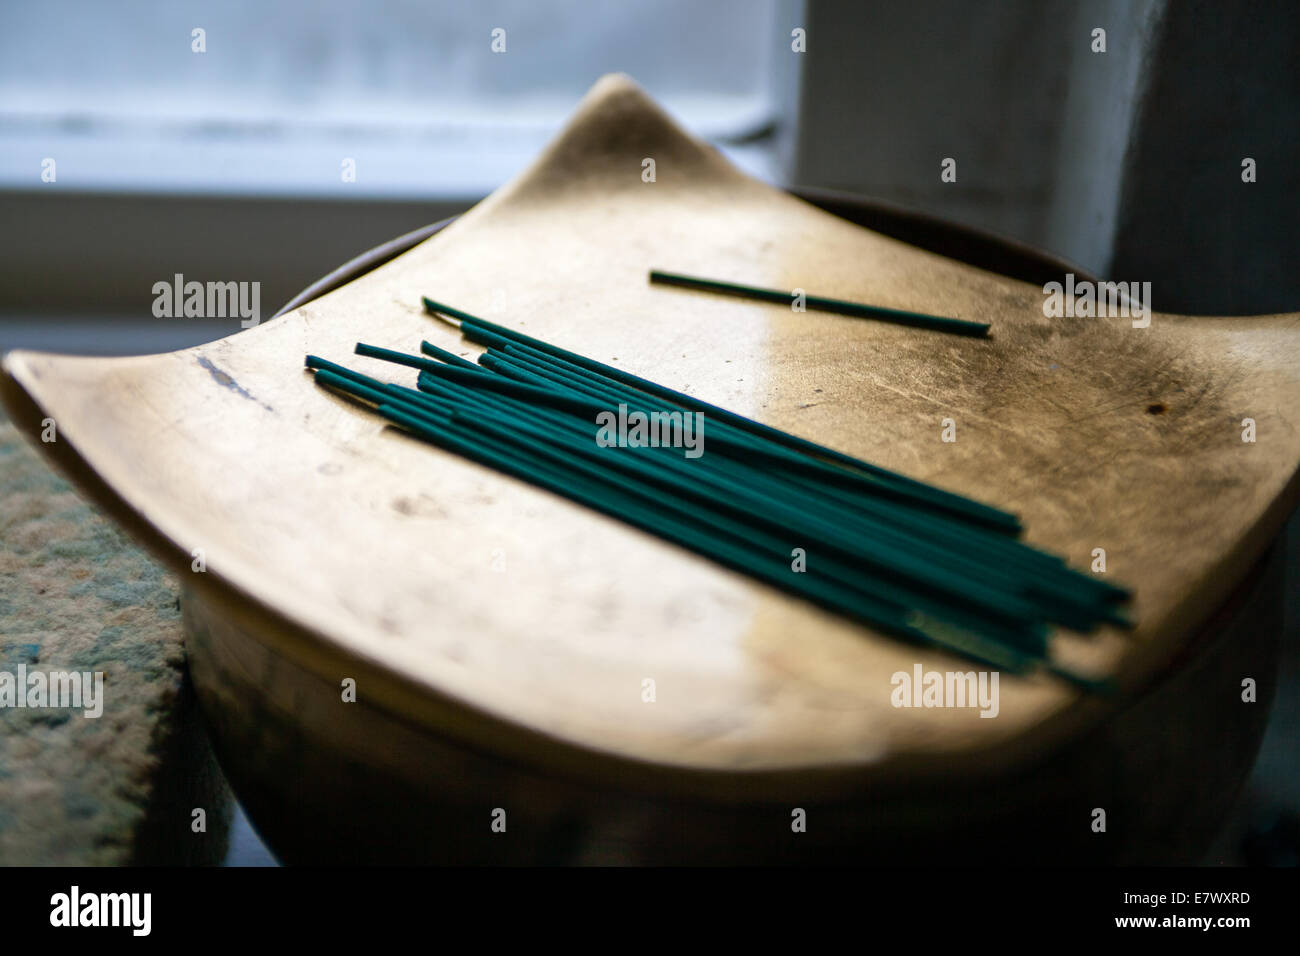 Buddhist incense ready for meditation and puja - Stock Image